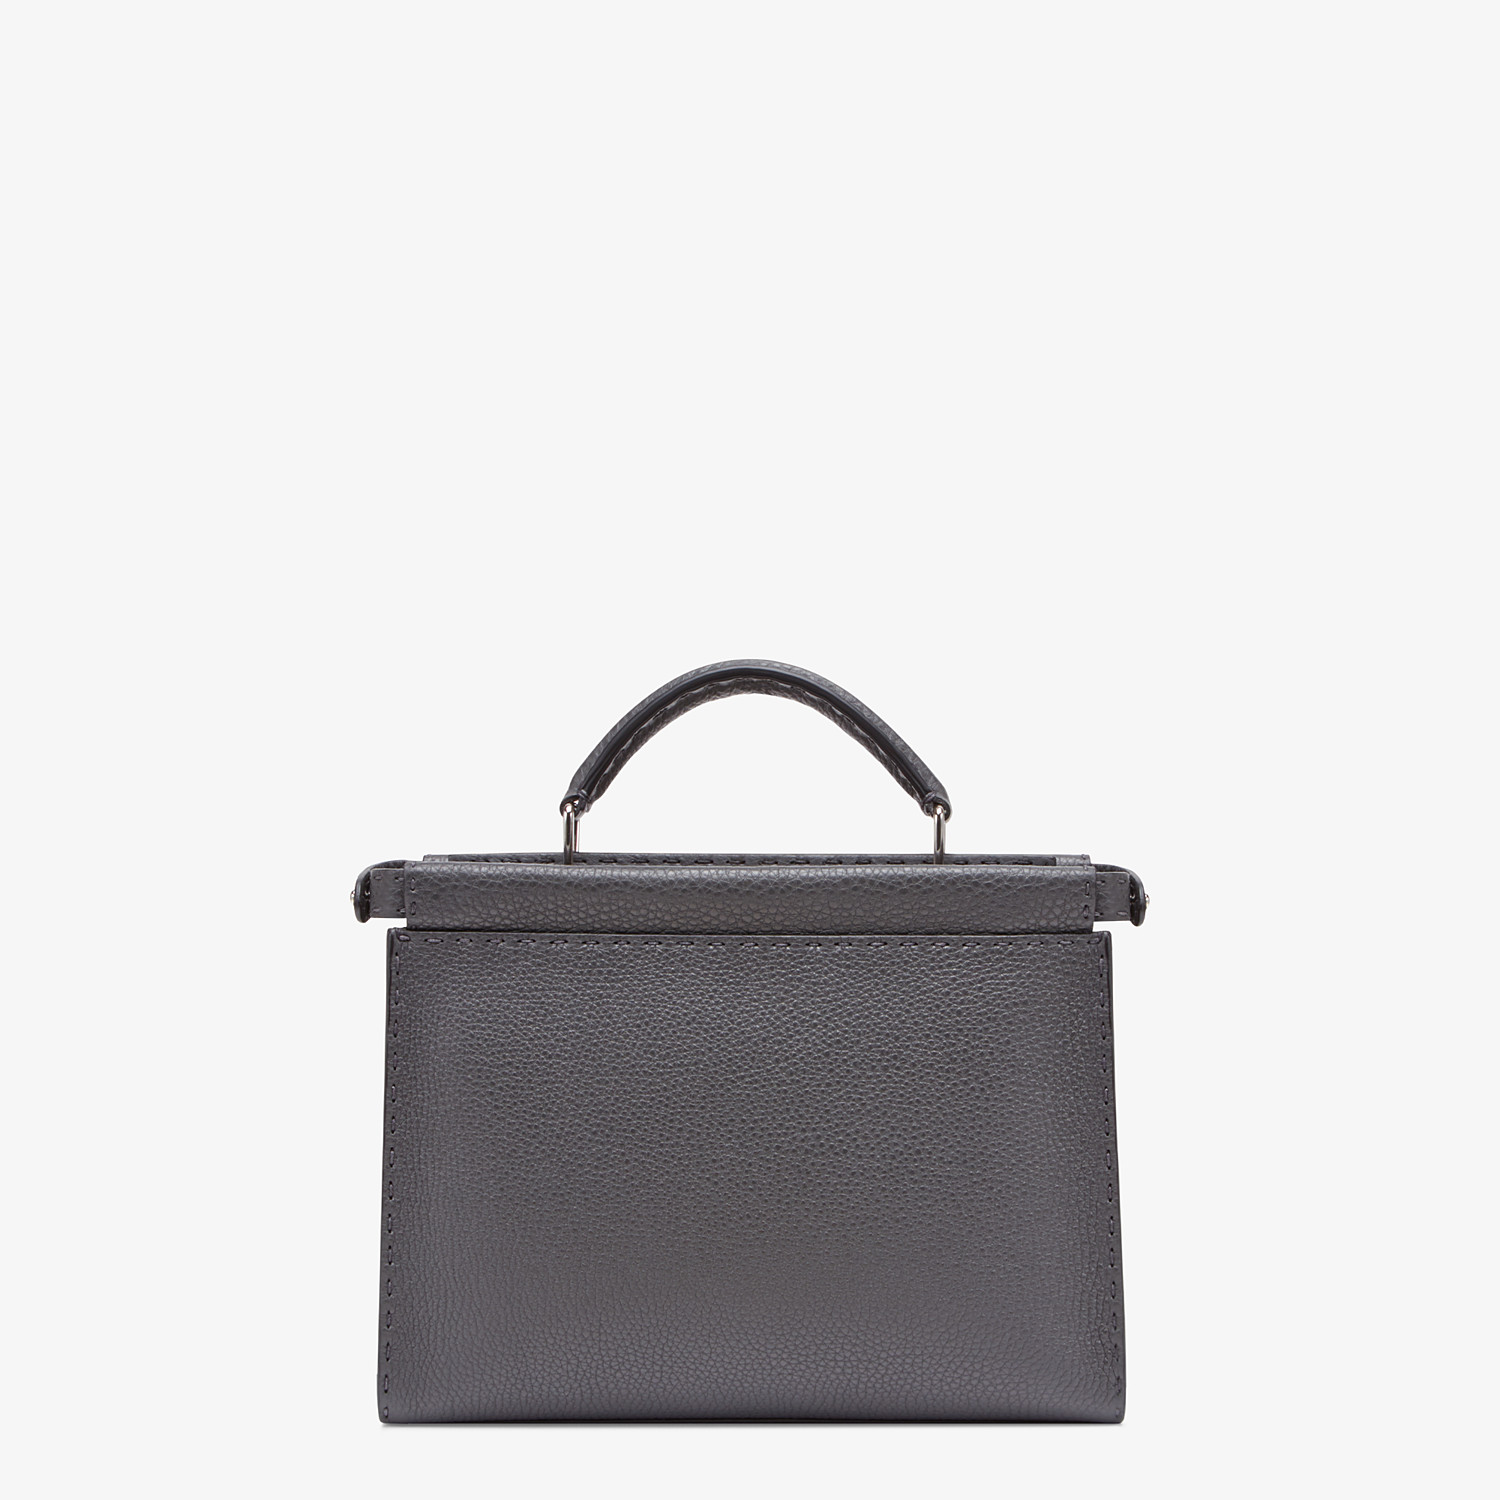 FENDI PEEKABOO ICONIC FIT MINI - Gray calfskin bag - view 3 detail